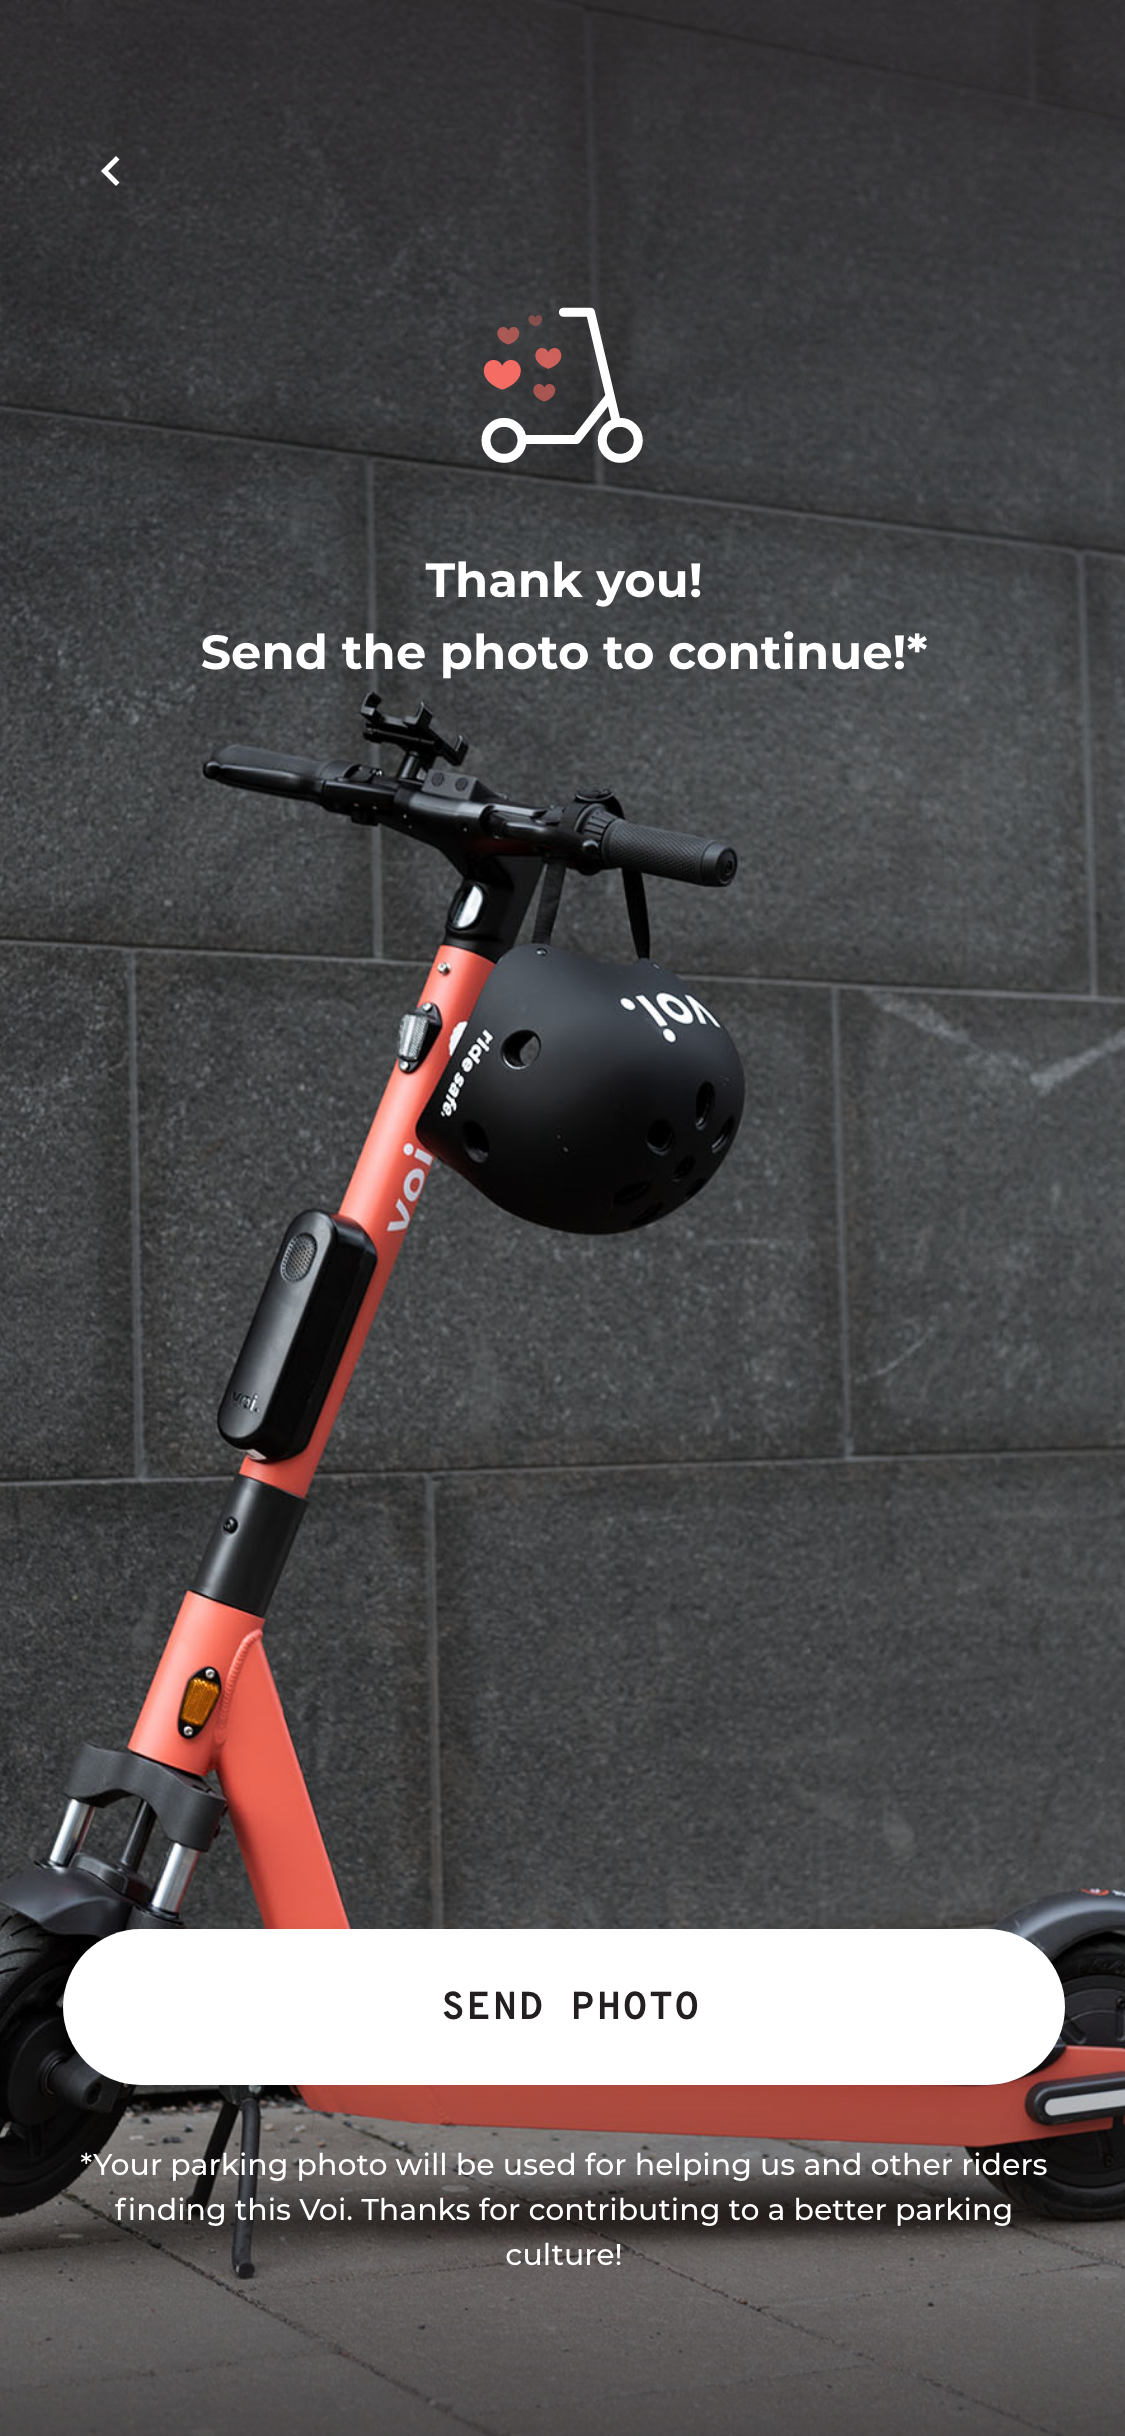 A screenshot of Voi's app confirming the End of Ride Photo is submitted.